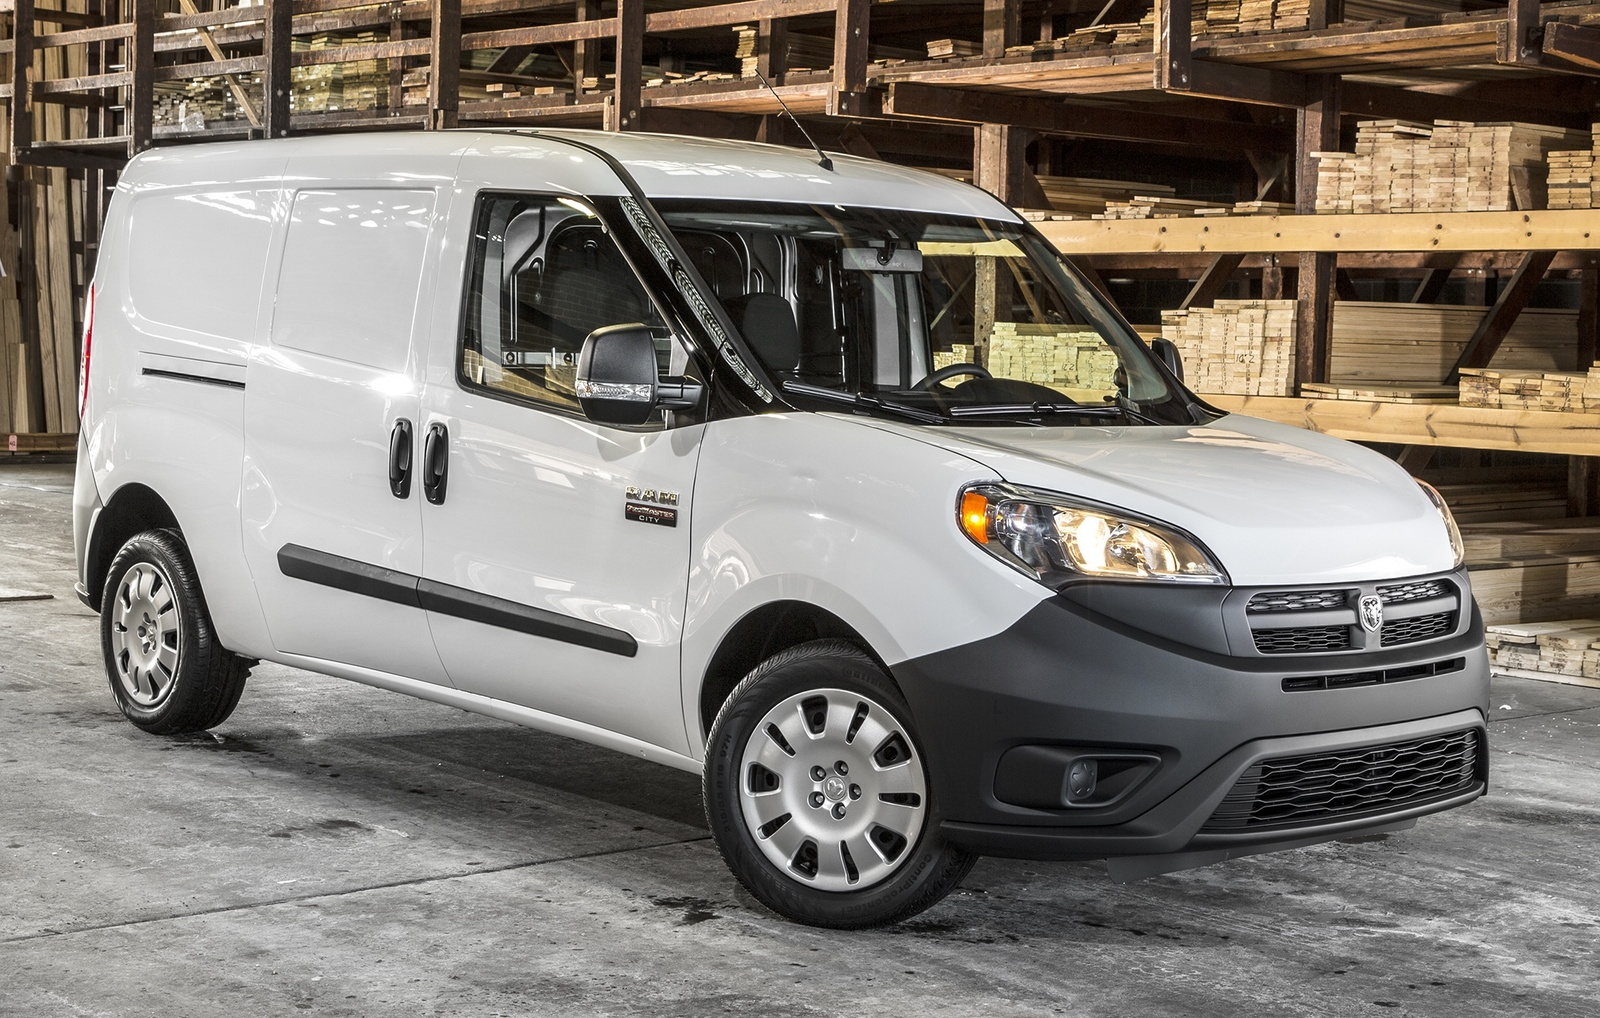 2015 ram promaster city review cargurus. Black Bedroom Furniture Sets. Home Design Ideas